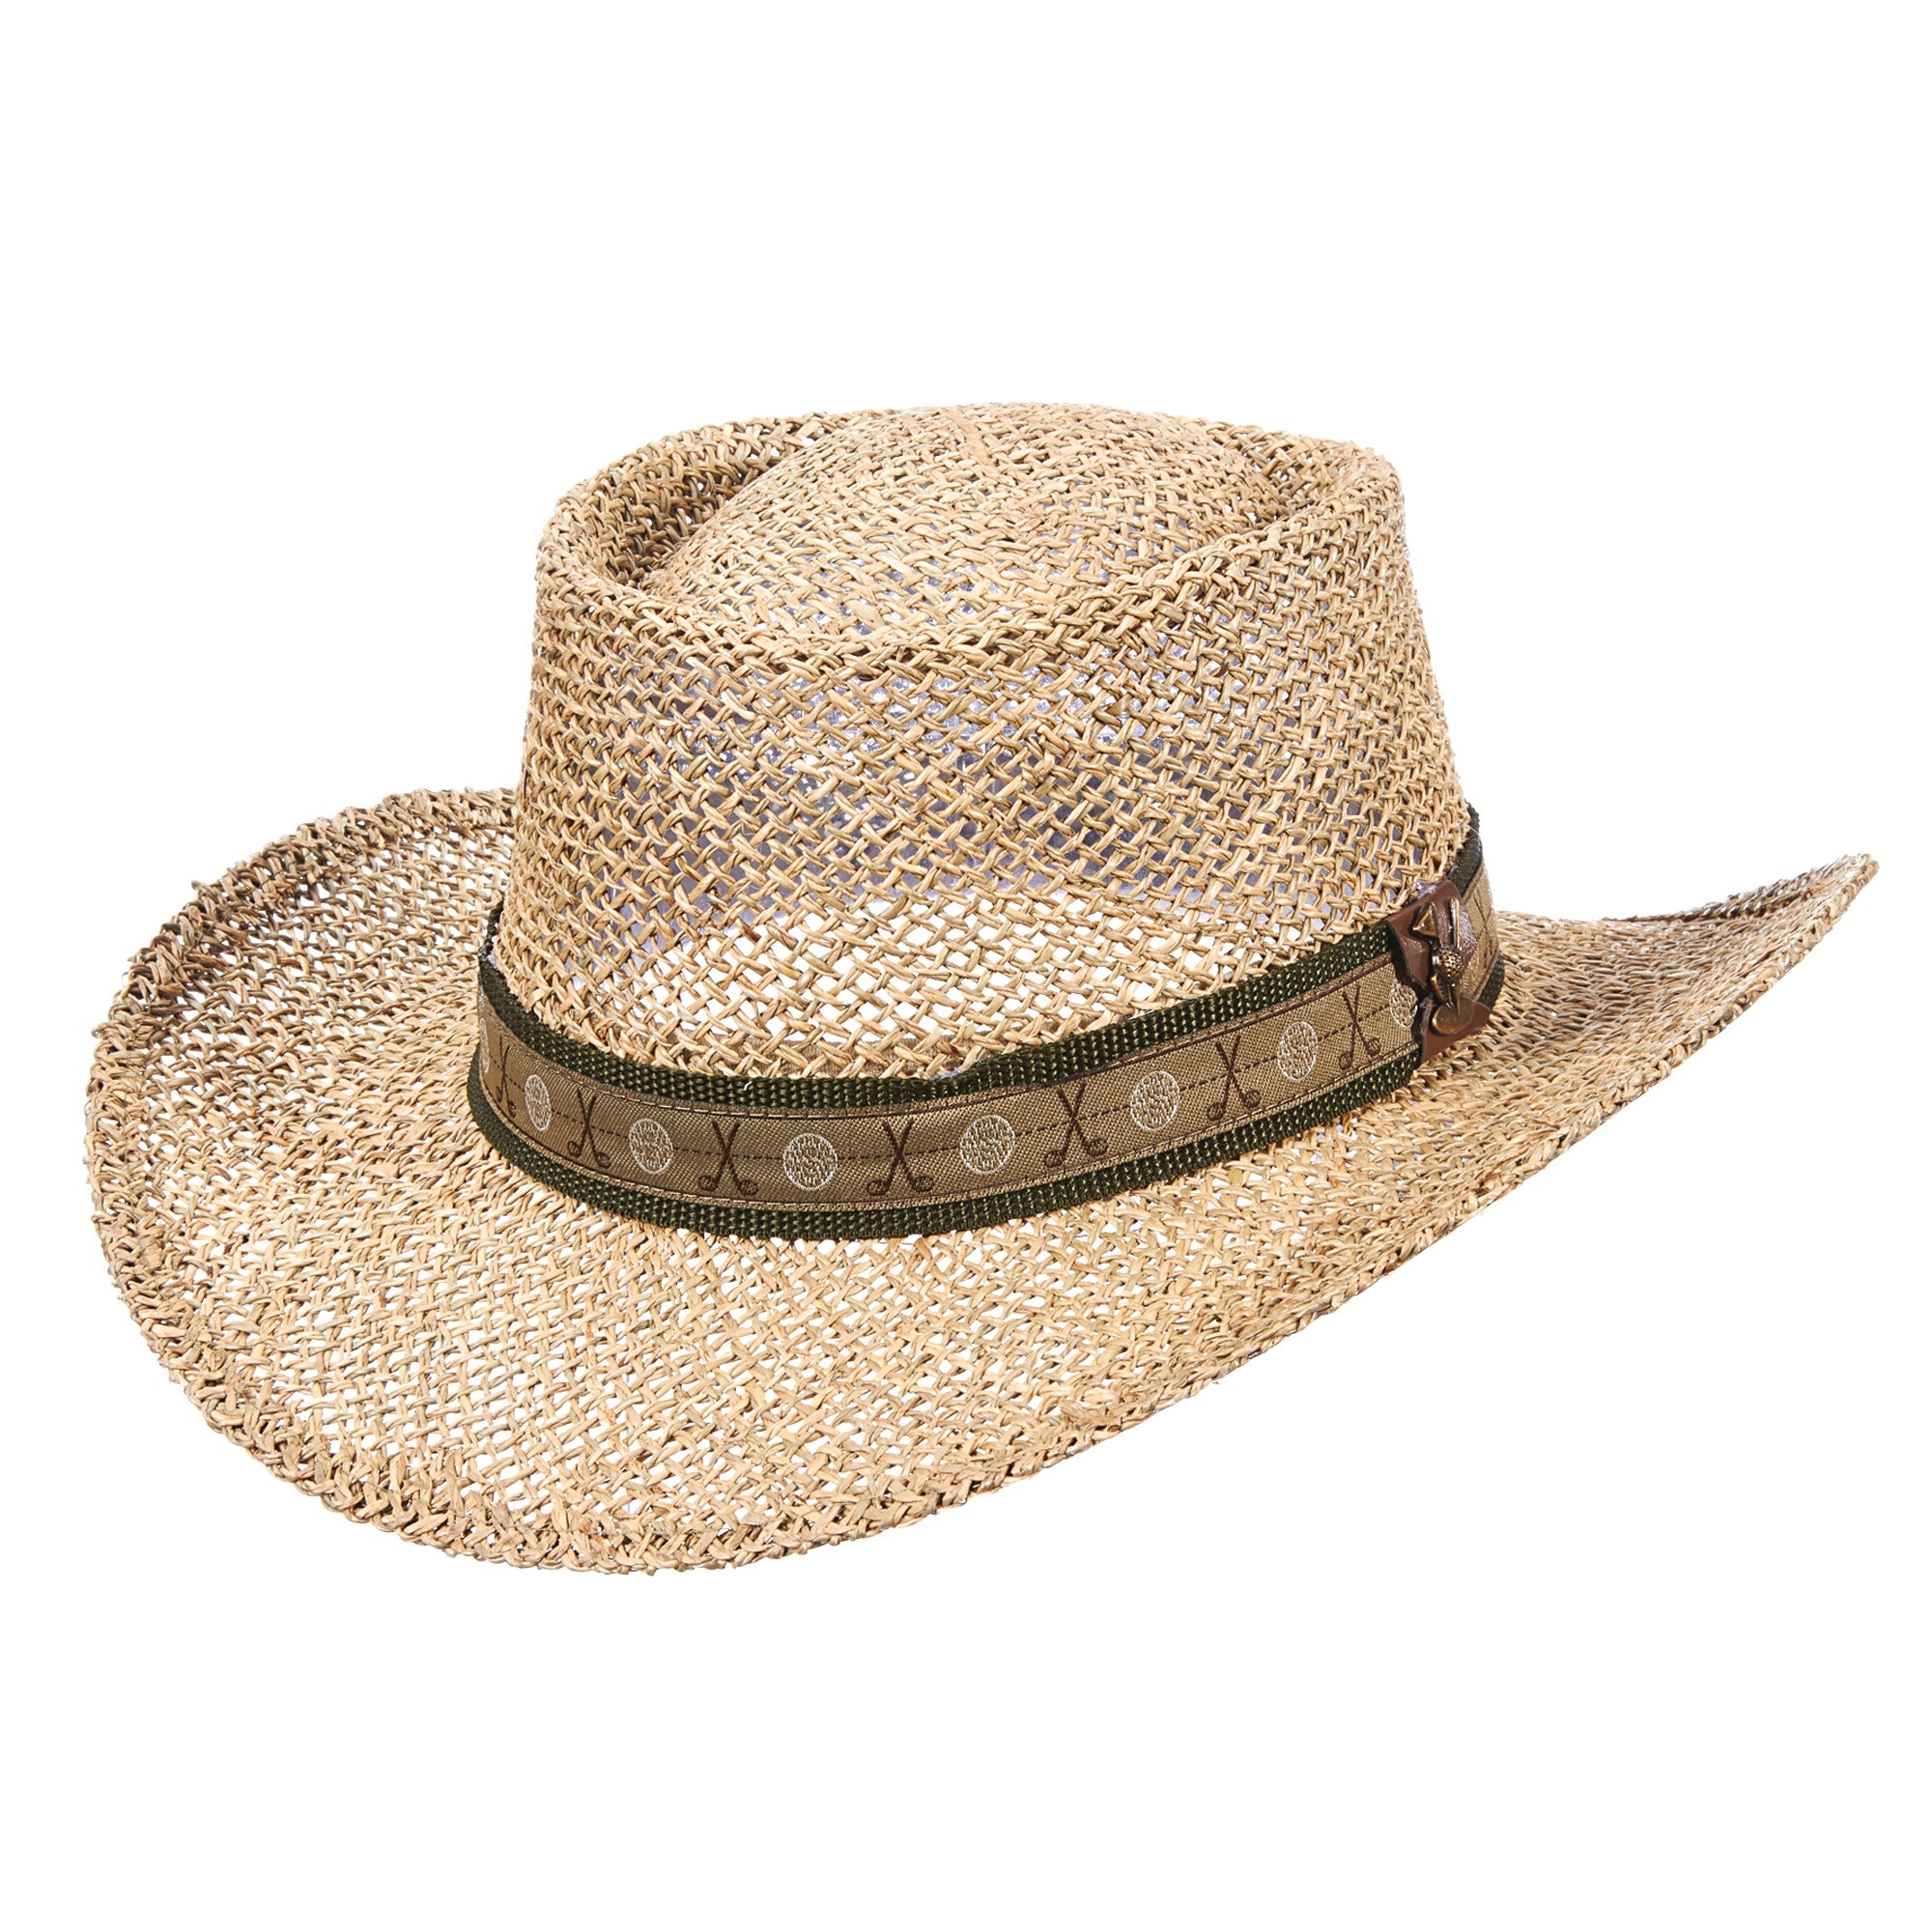 Shop DPC Outdoor Design Men s Twisted Seagrass Gambler Hat with Golf  Hatband - Free Shipping On Orders Over  45 - Overstock - 20979075 3120238aa15